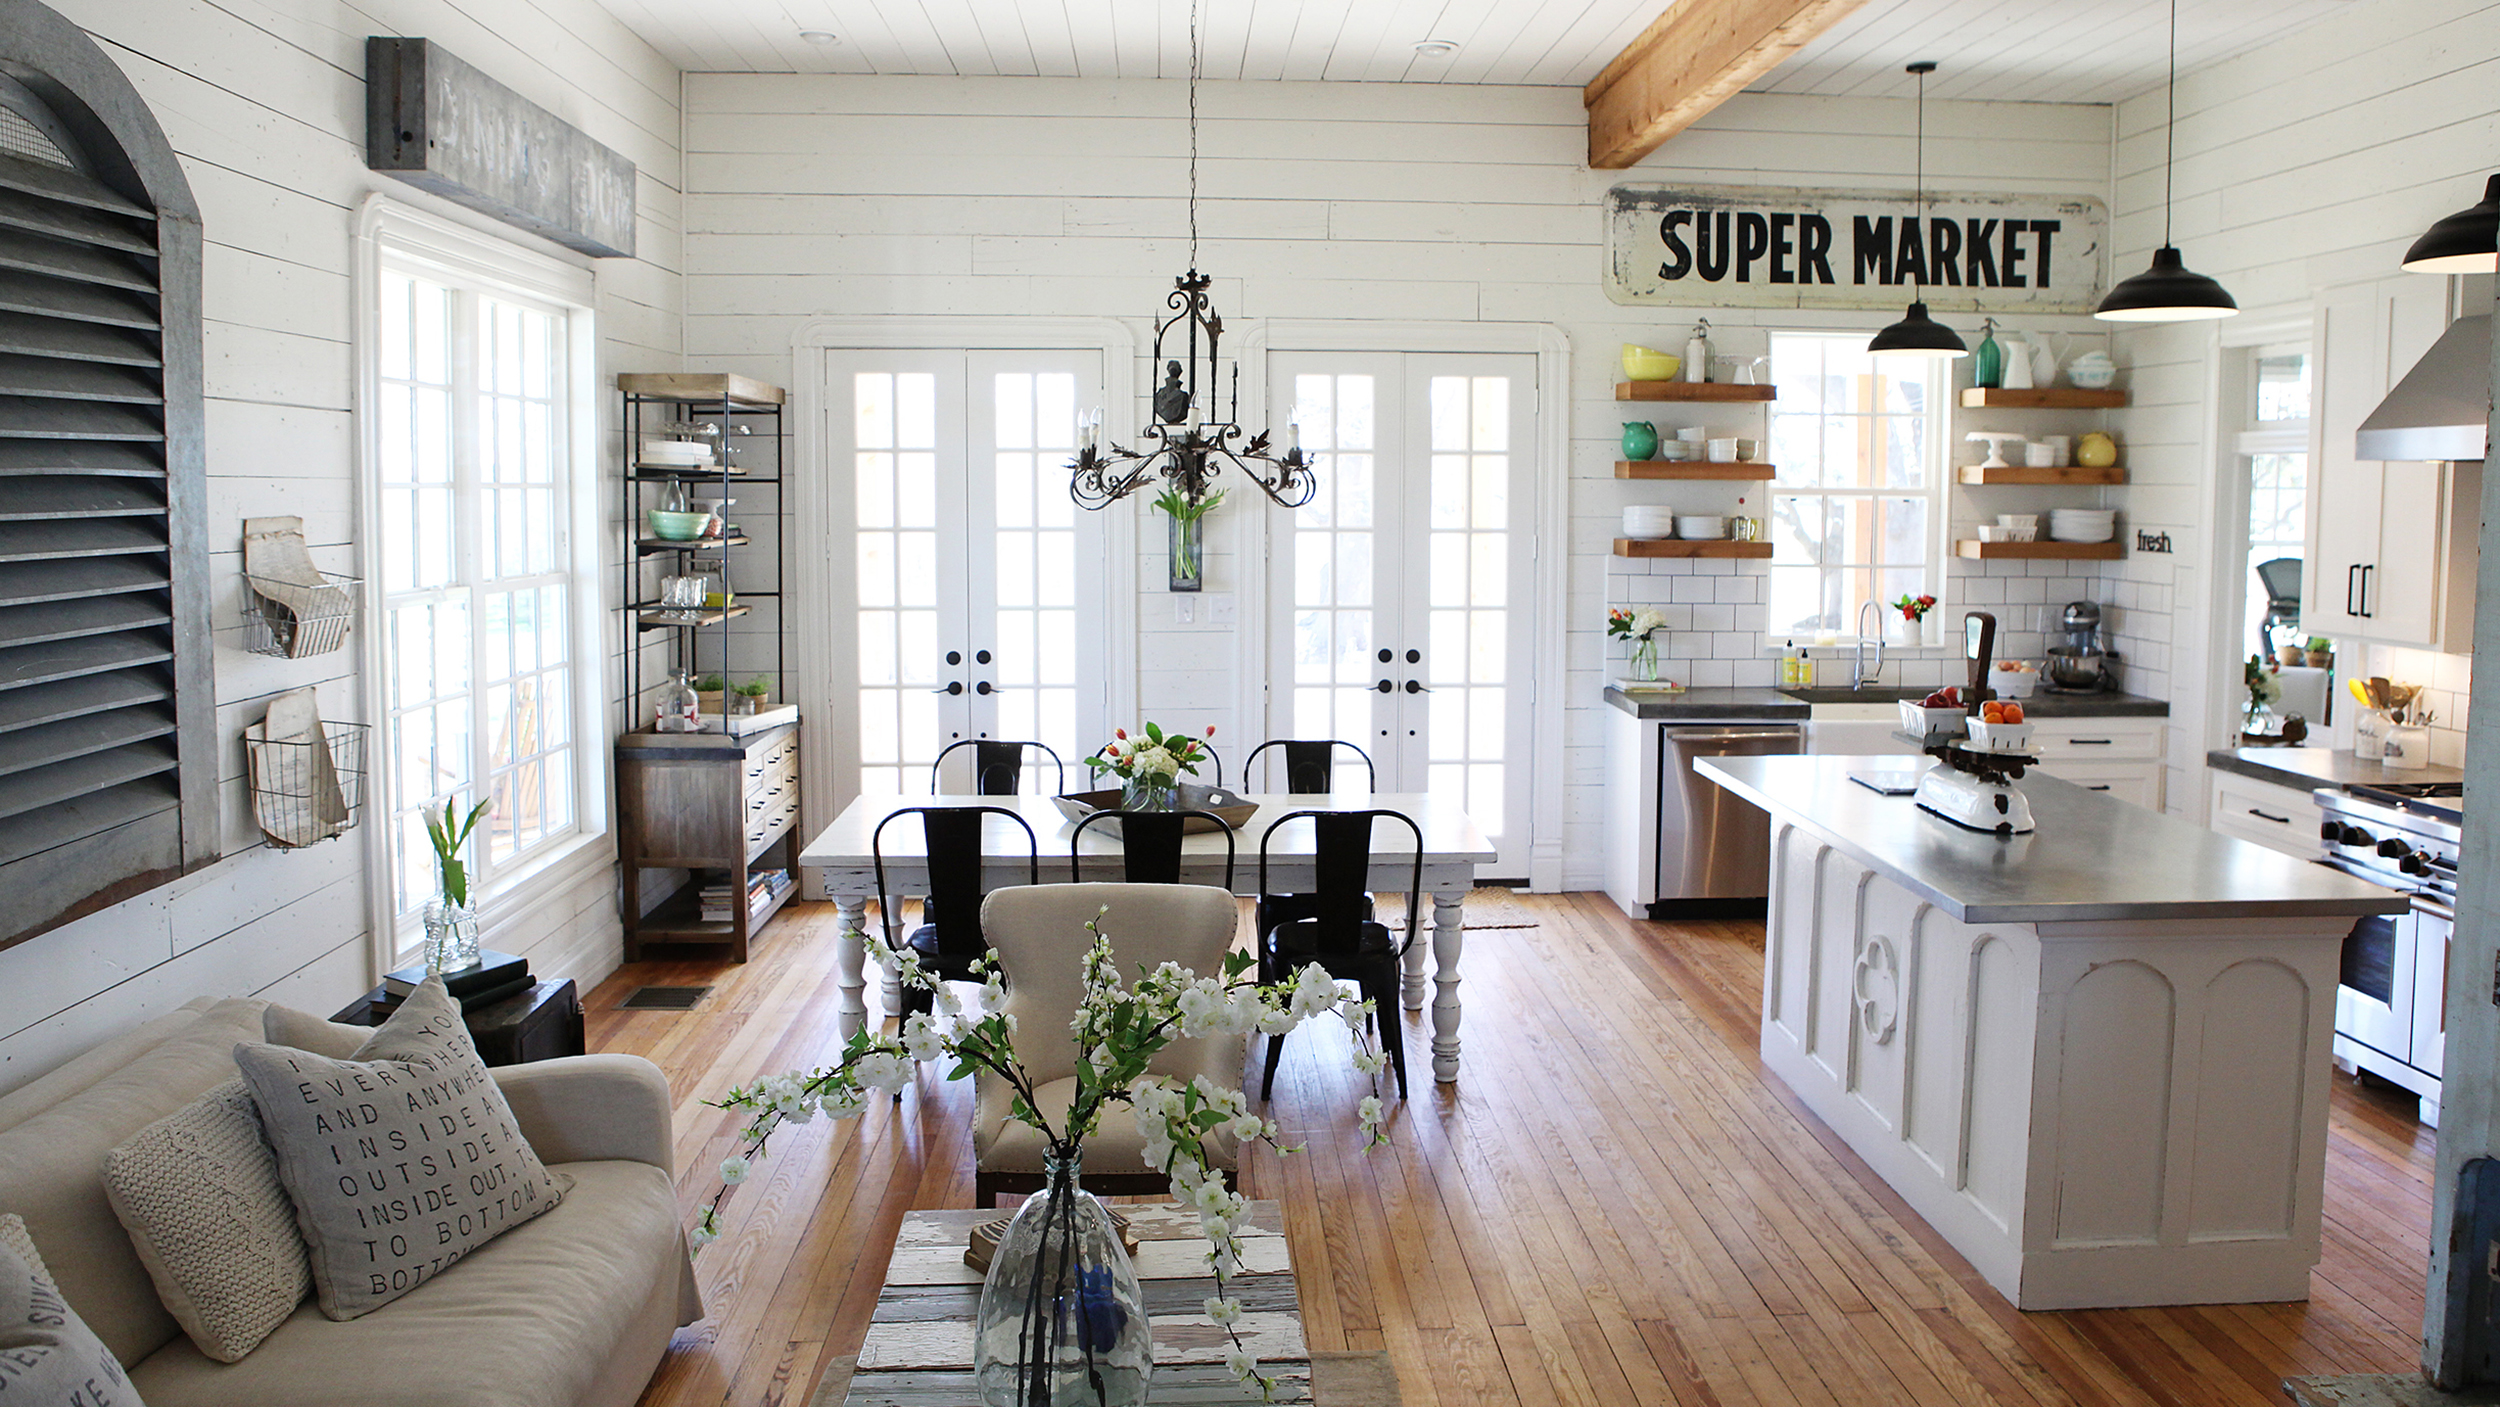 Chip and joanna gaines 39 fixer upper 39 home tour in waco for Texas decorations for the home